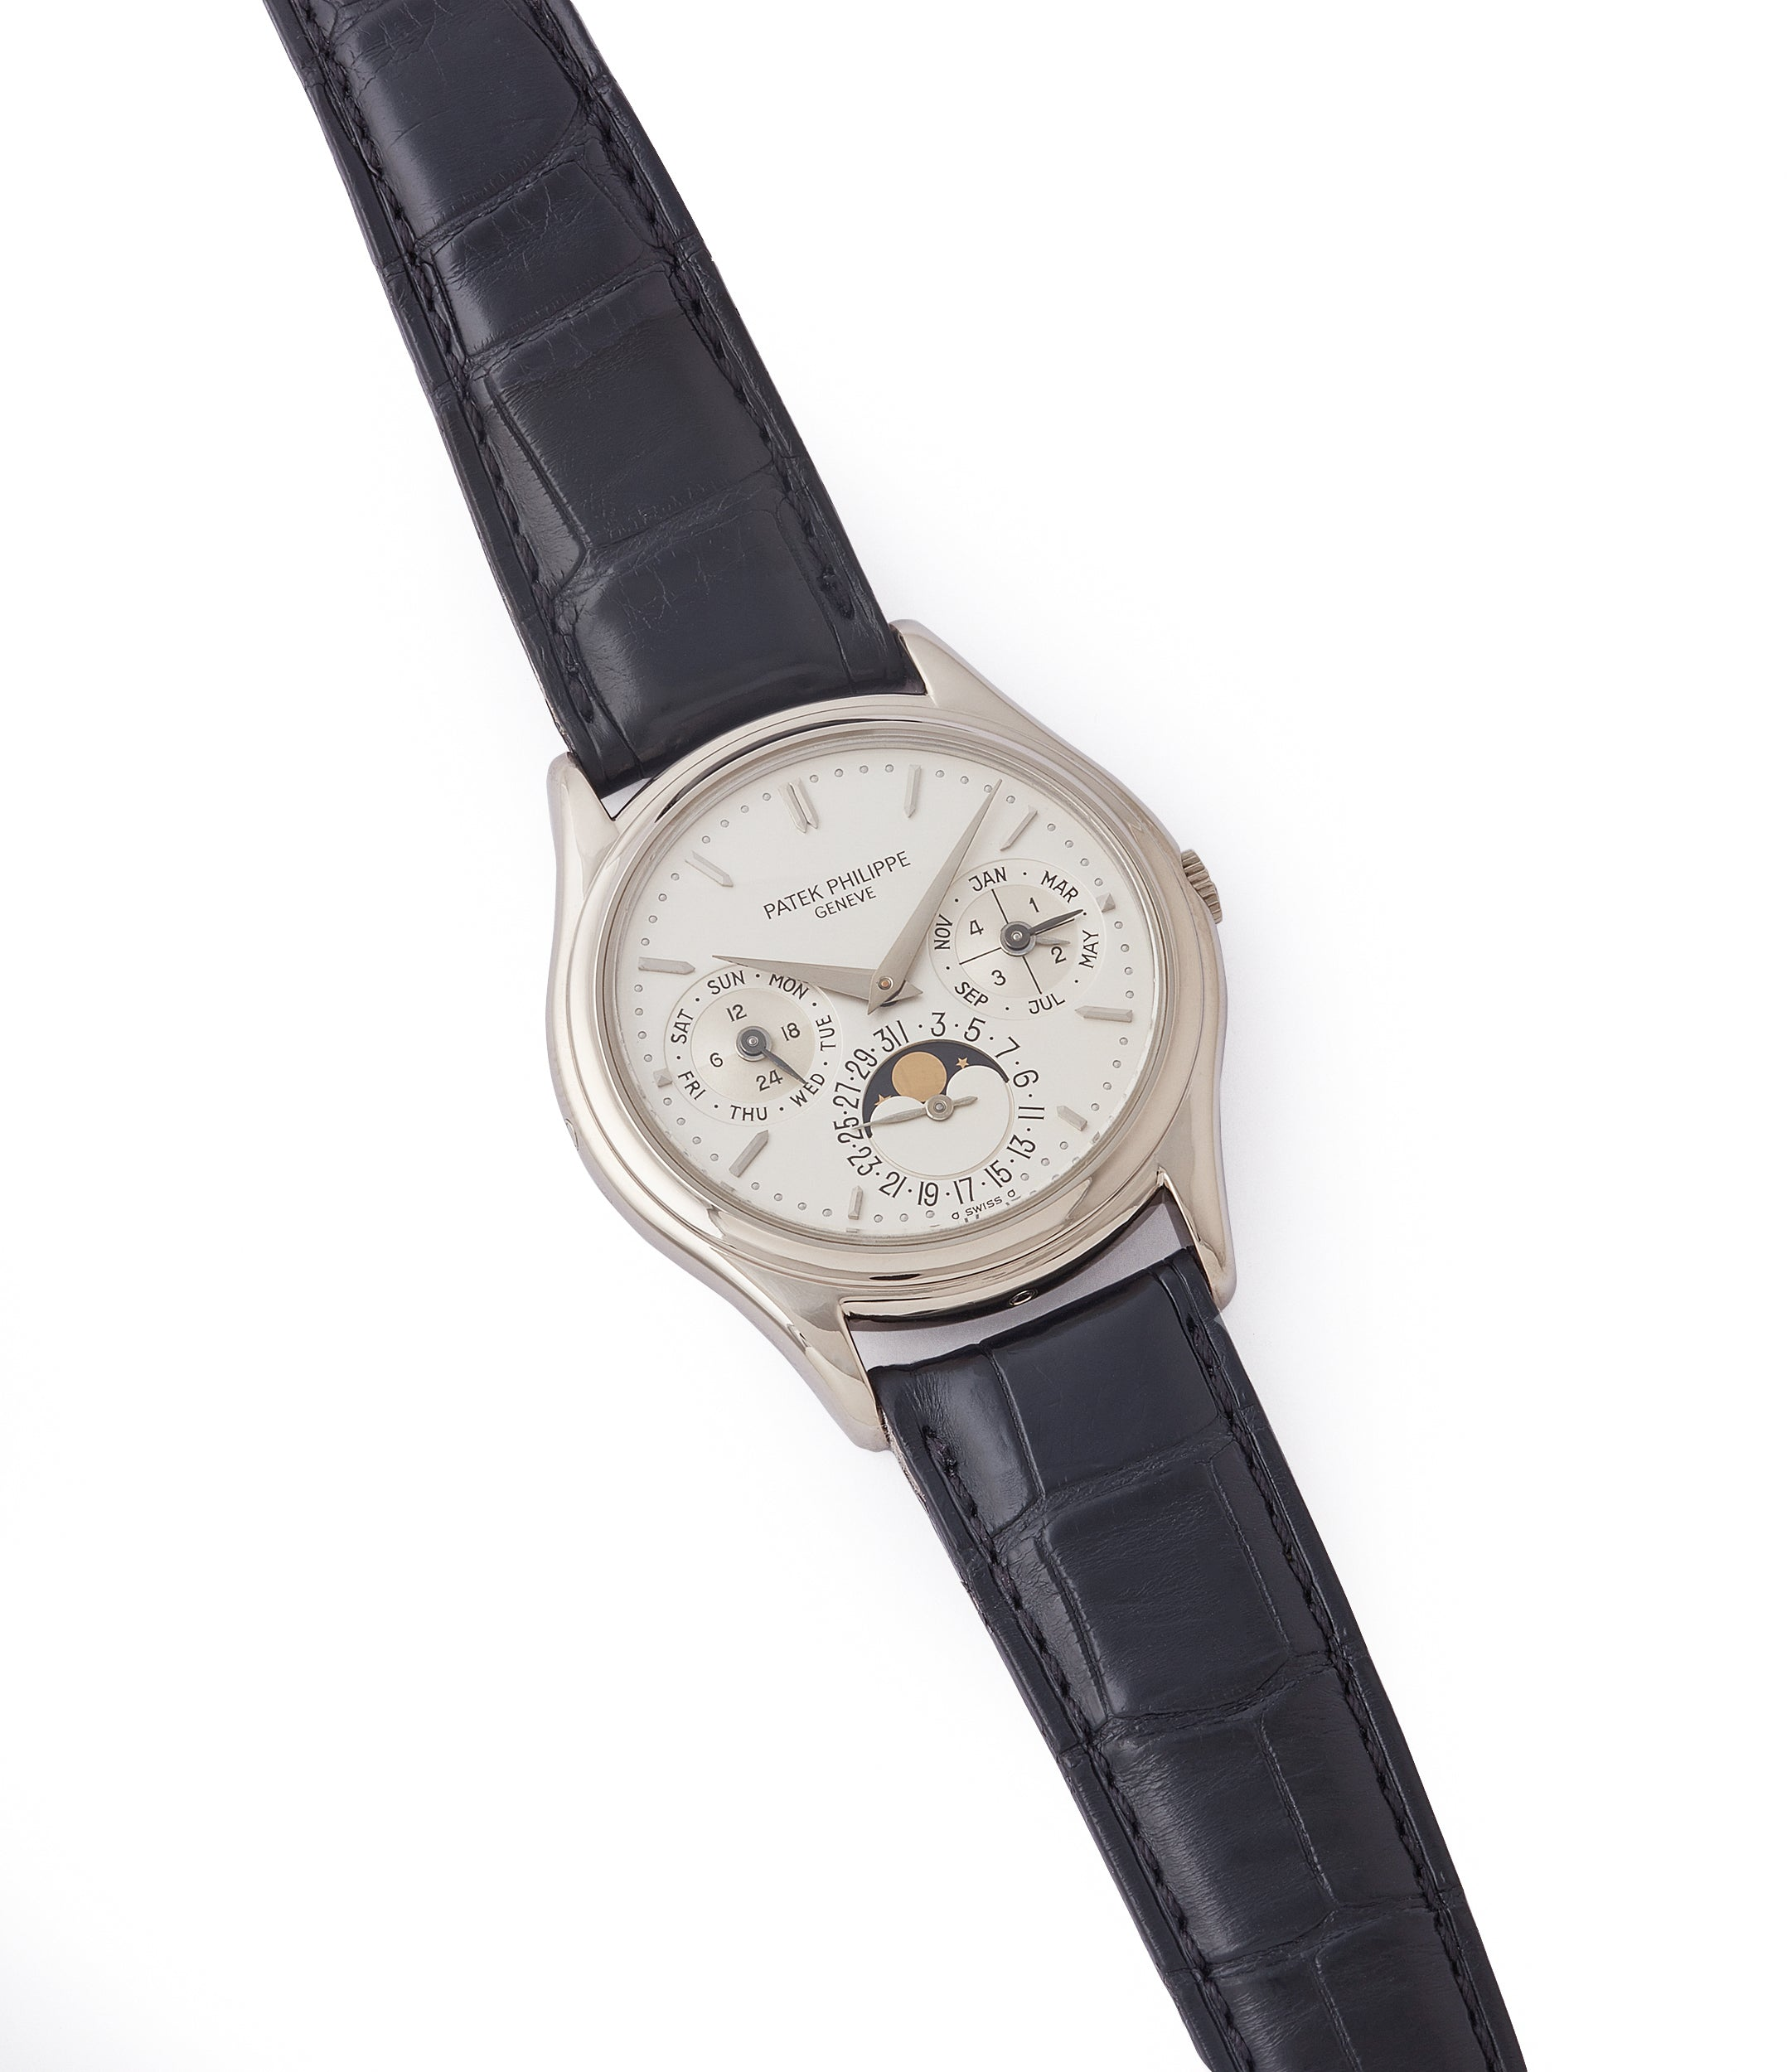 selling Patek Philippe 3940G Perpetual Calendar vintage rare watch English dial for sale online at A Collected Man London UK specialist of rare watches